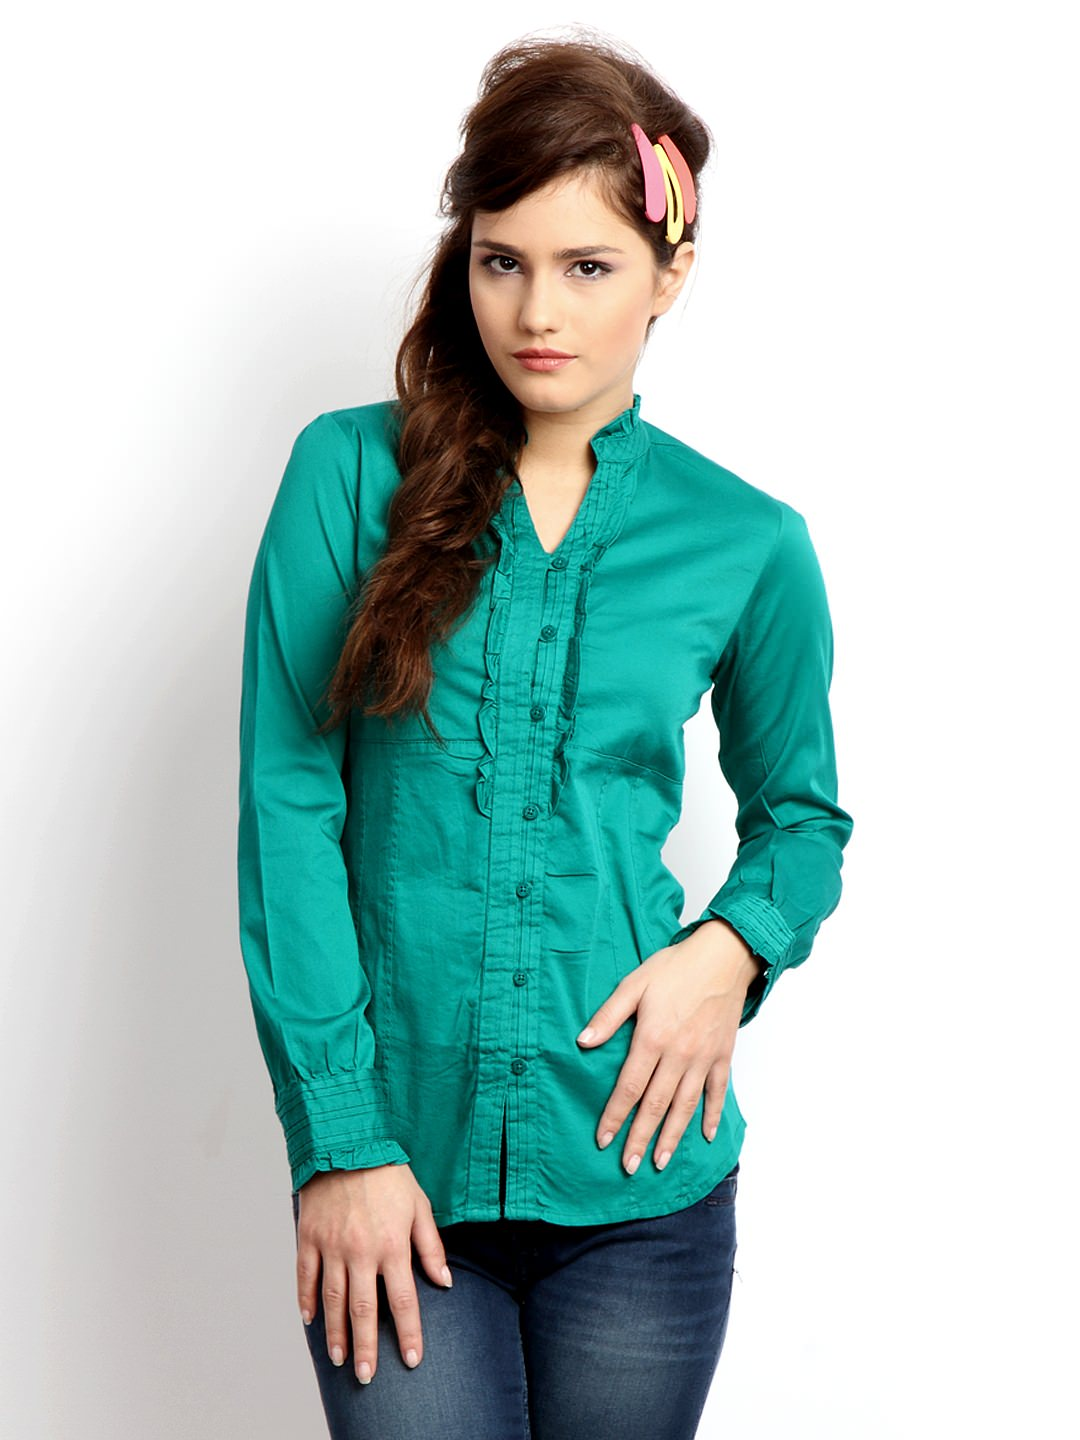 Pepe-Jeans-Women-Green-Shirt_Latest Ladies Tops and Shirts By Best Brands